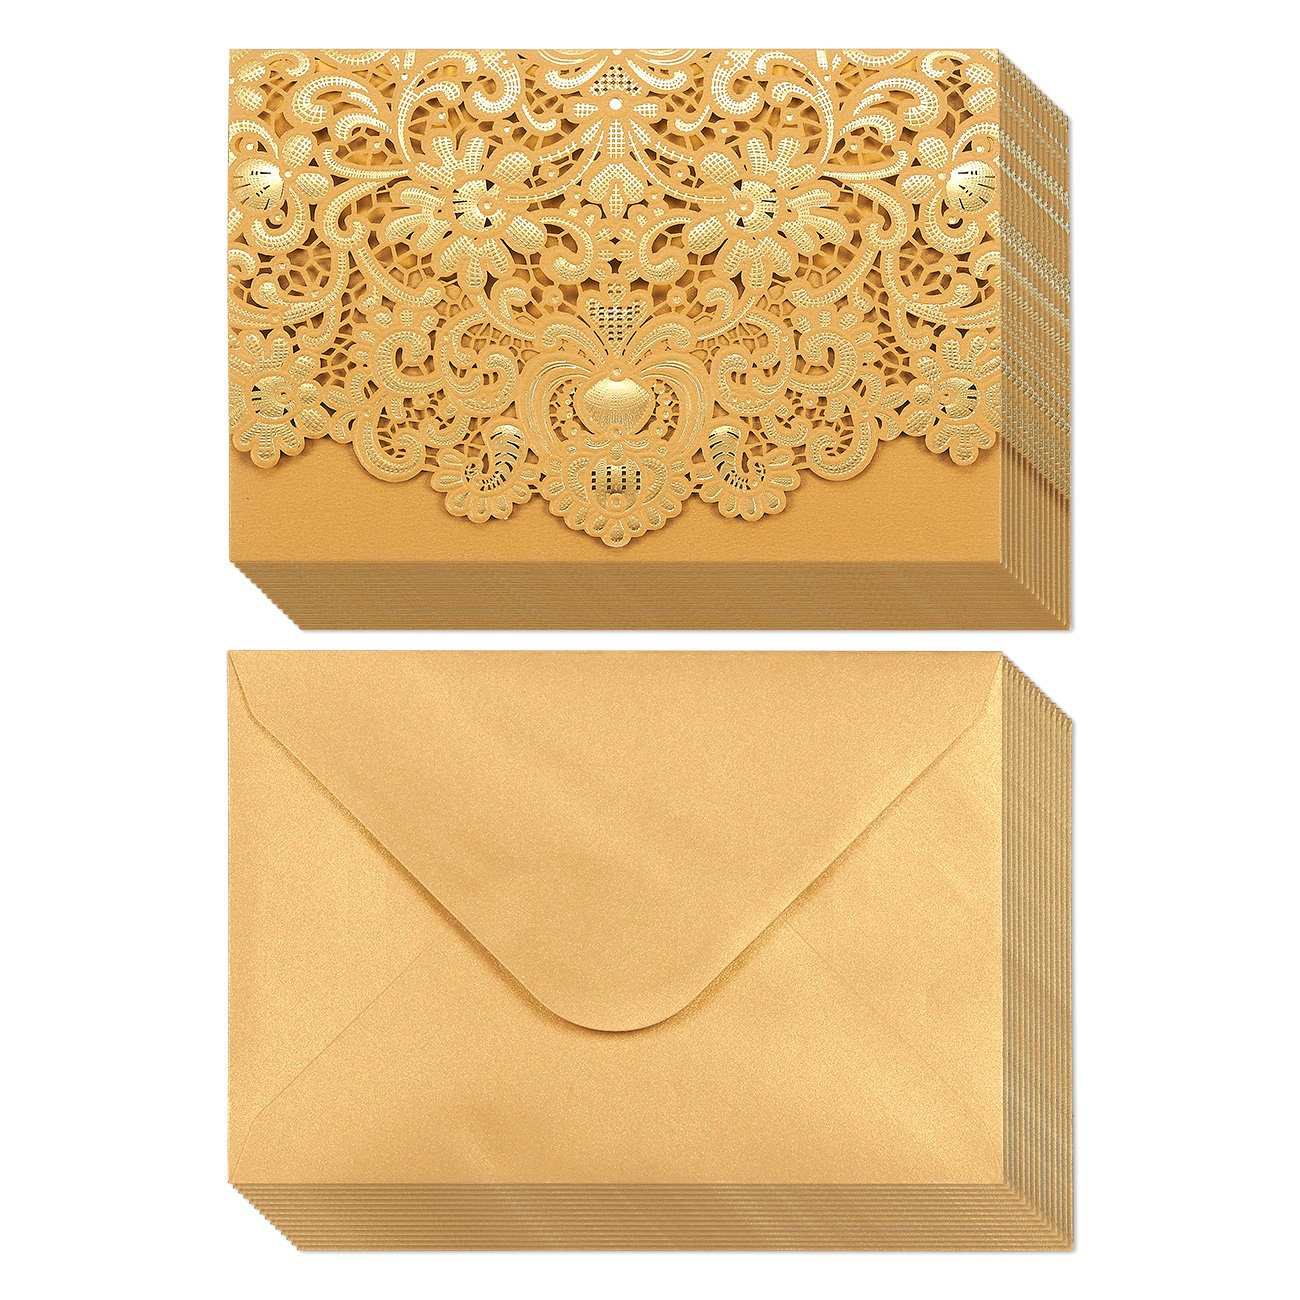 24-Pack Wedding Invitation Cards - Laser Cut Gold Foil and Floral Design Invitation Pockets for Bridal Showers, Engagement Parties, Includes Covers, Blank Inserts, Envelopes, 5 x 7.25 Inches by Best Paper Greetings